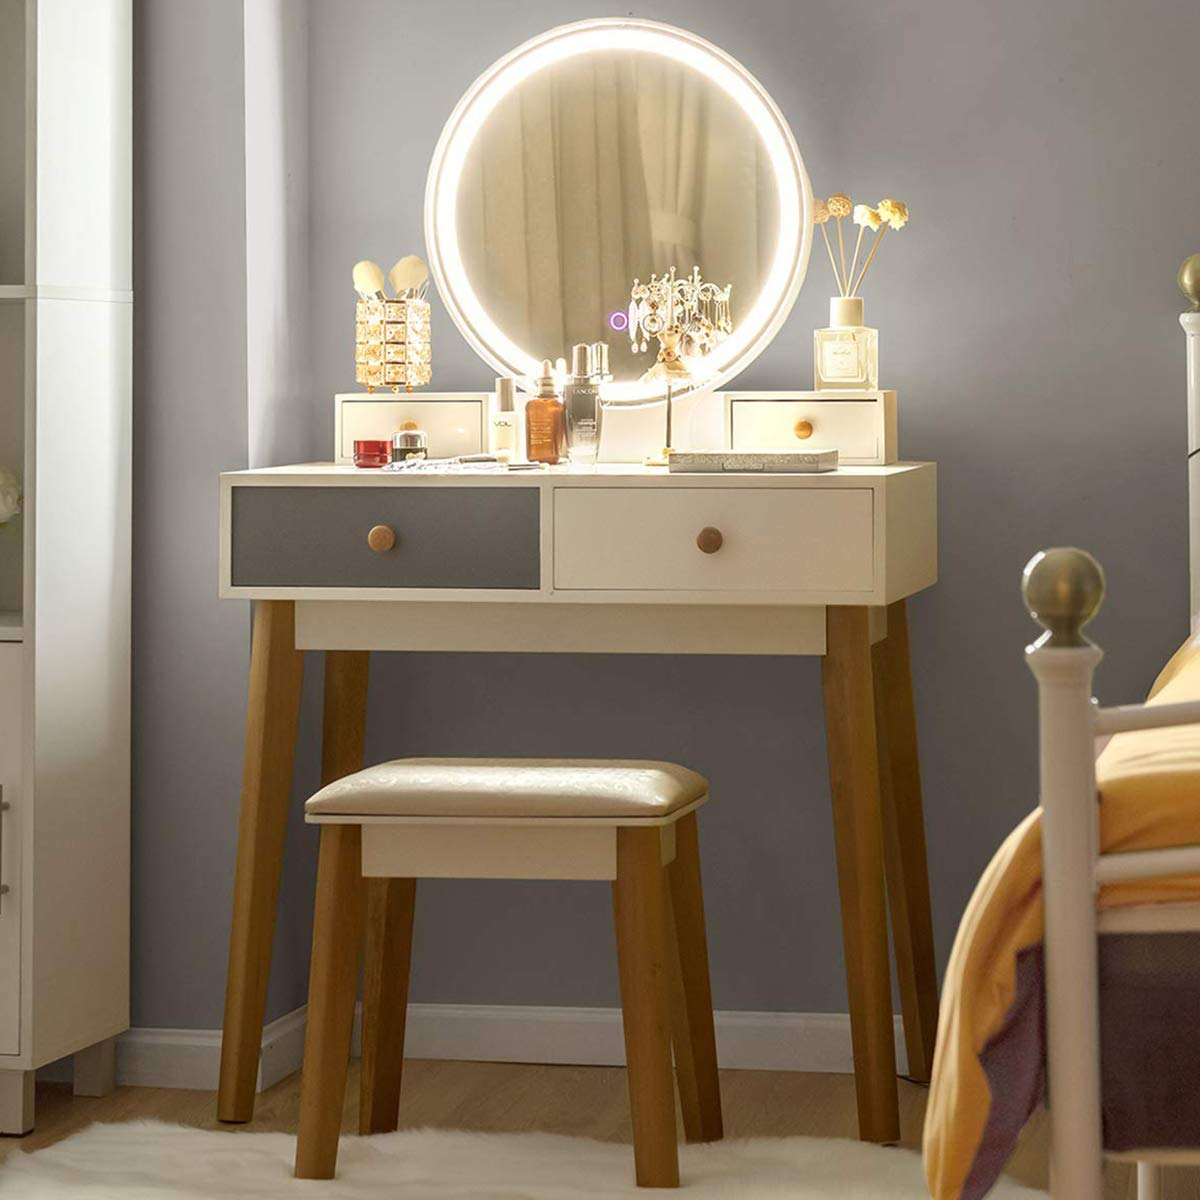 CHARMAID Vanity Set with 3 Color Touch Screen Dimming Mirror, Dressing Table with 4 Sliding Drawers and Touch-Screen Light Control Mirror, Makeup Table and Cushioned Stool Set for Women Girls (Gray) by CHARMAID